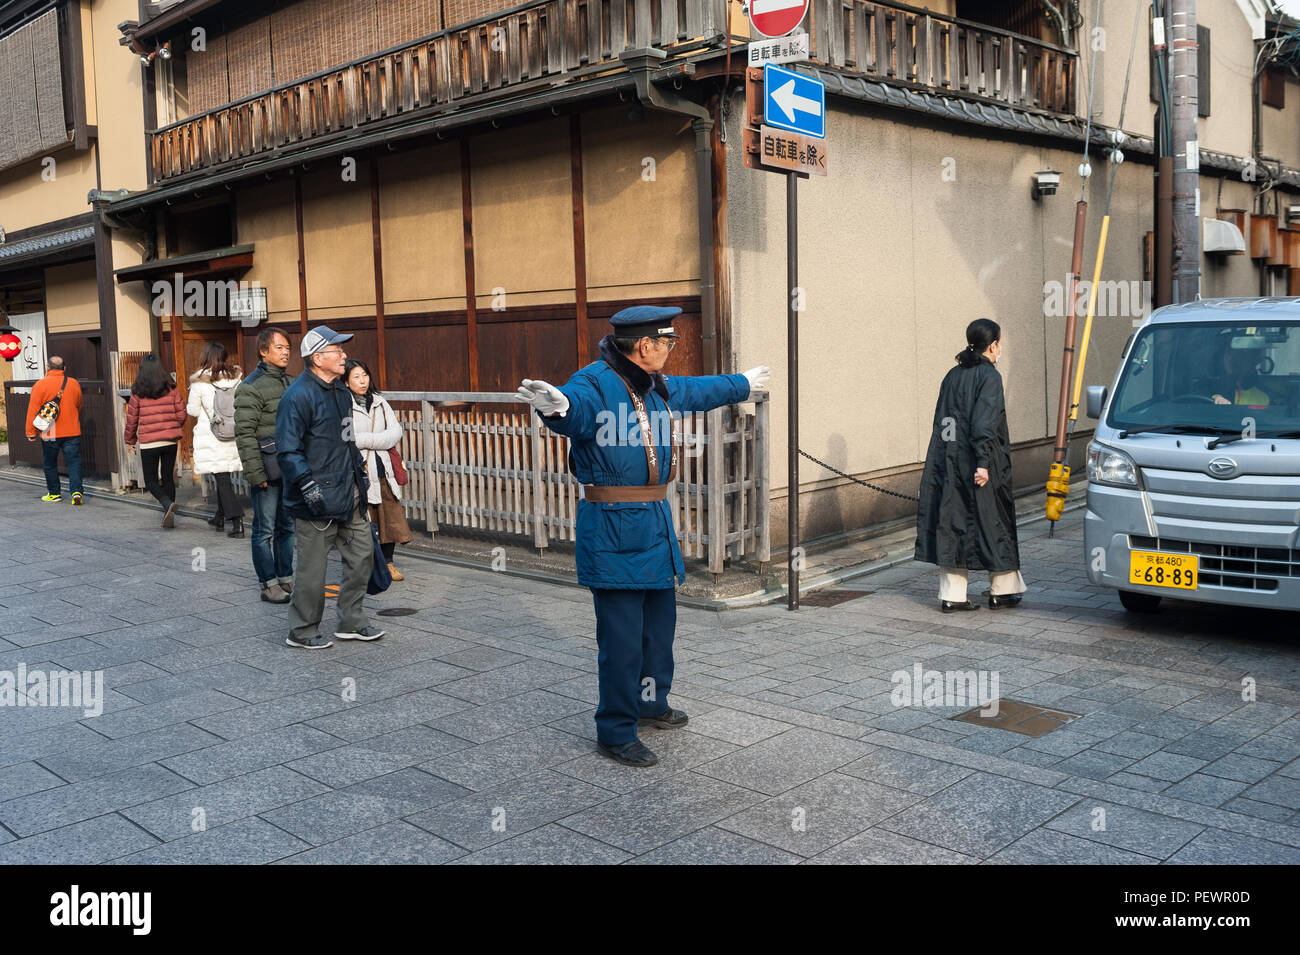 23.12.2017, Kyoto, Japan, Asia - A traffic warden is seen regulating the flow of traffic at an intersection in Kyoto's old city. - Stock Image